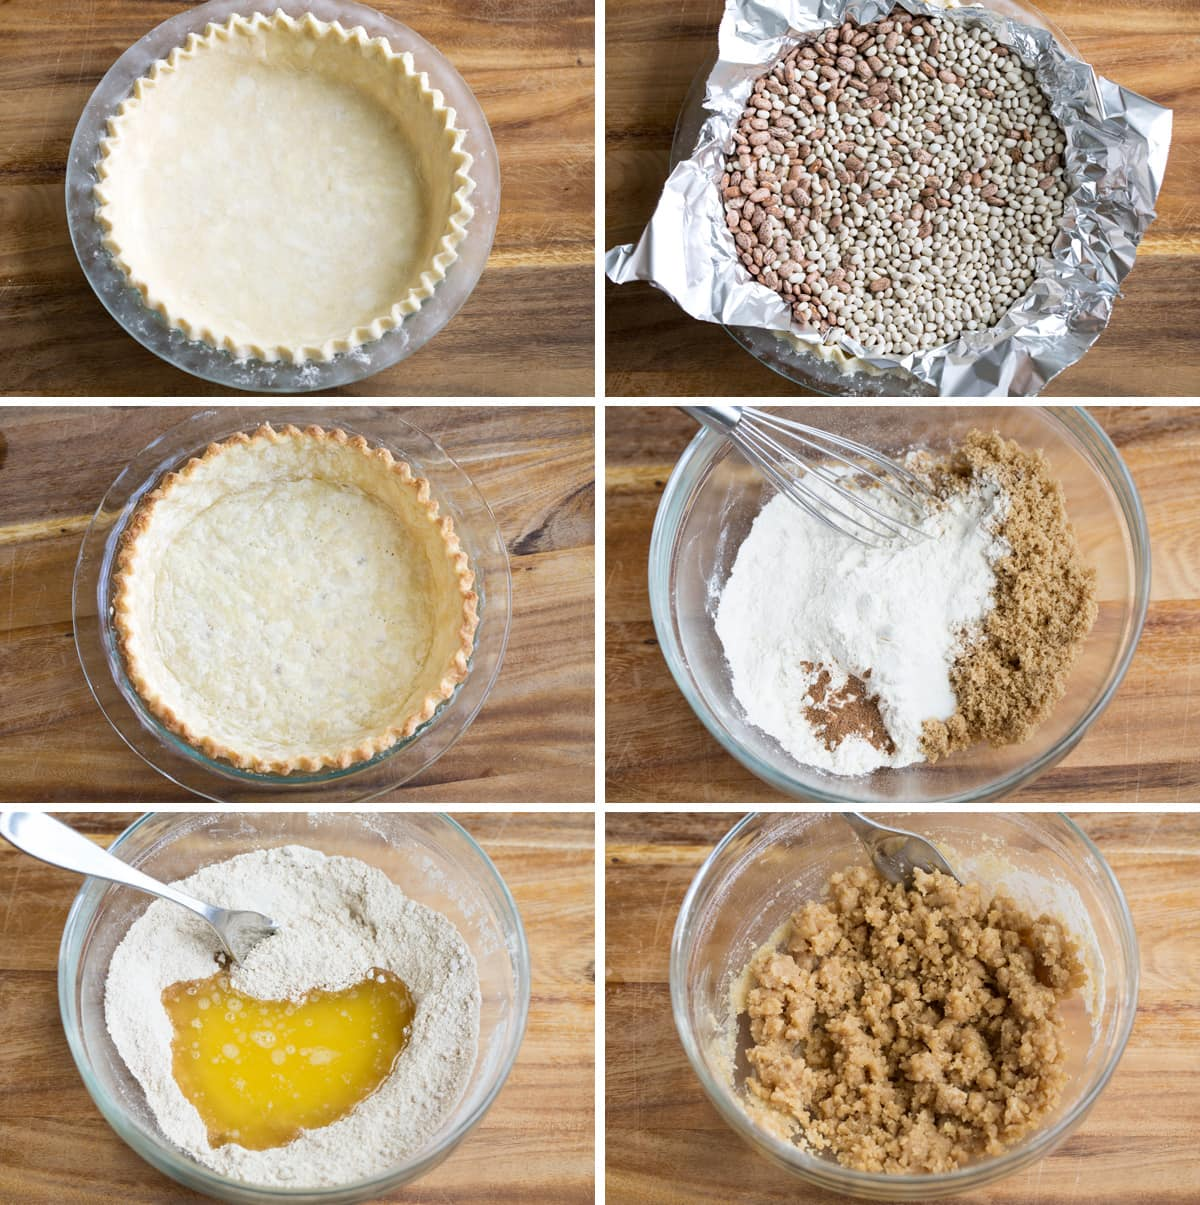 Showing steps to make a dutch apple pie including how to blind bake the crust, and make the crumb topping.